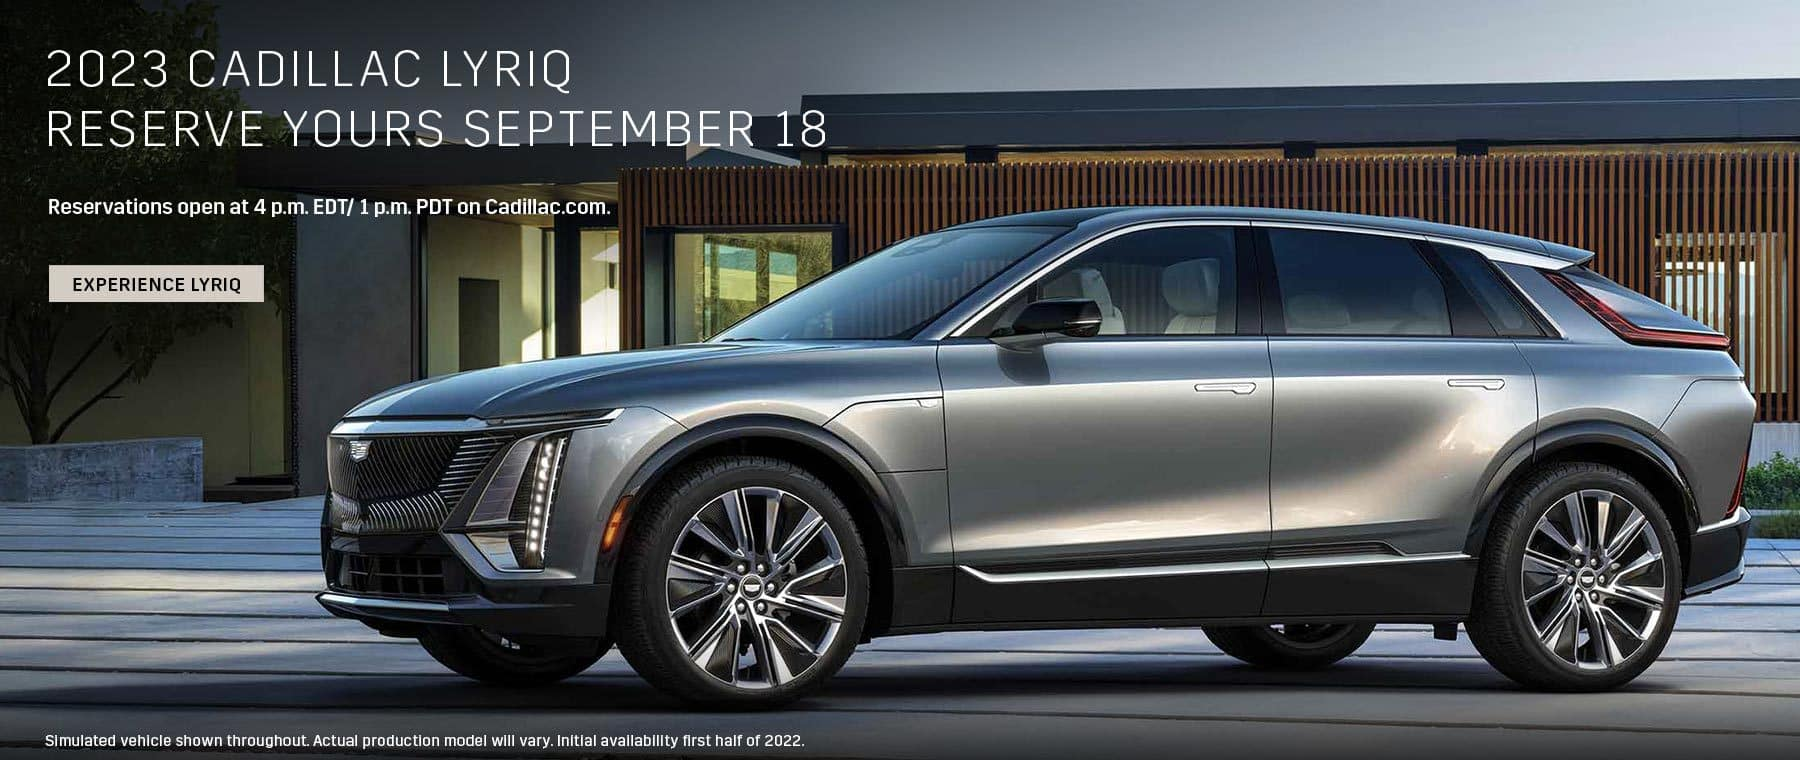 2023 Cadillac LYRIQ. Reserve yours September 18. Reservations open at 4 p.m. EDT/1 p.m. PDT on Cadillac.com.